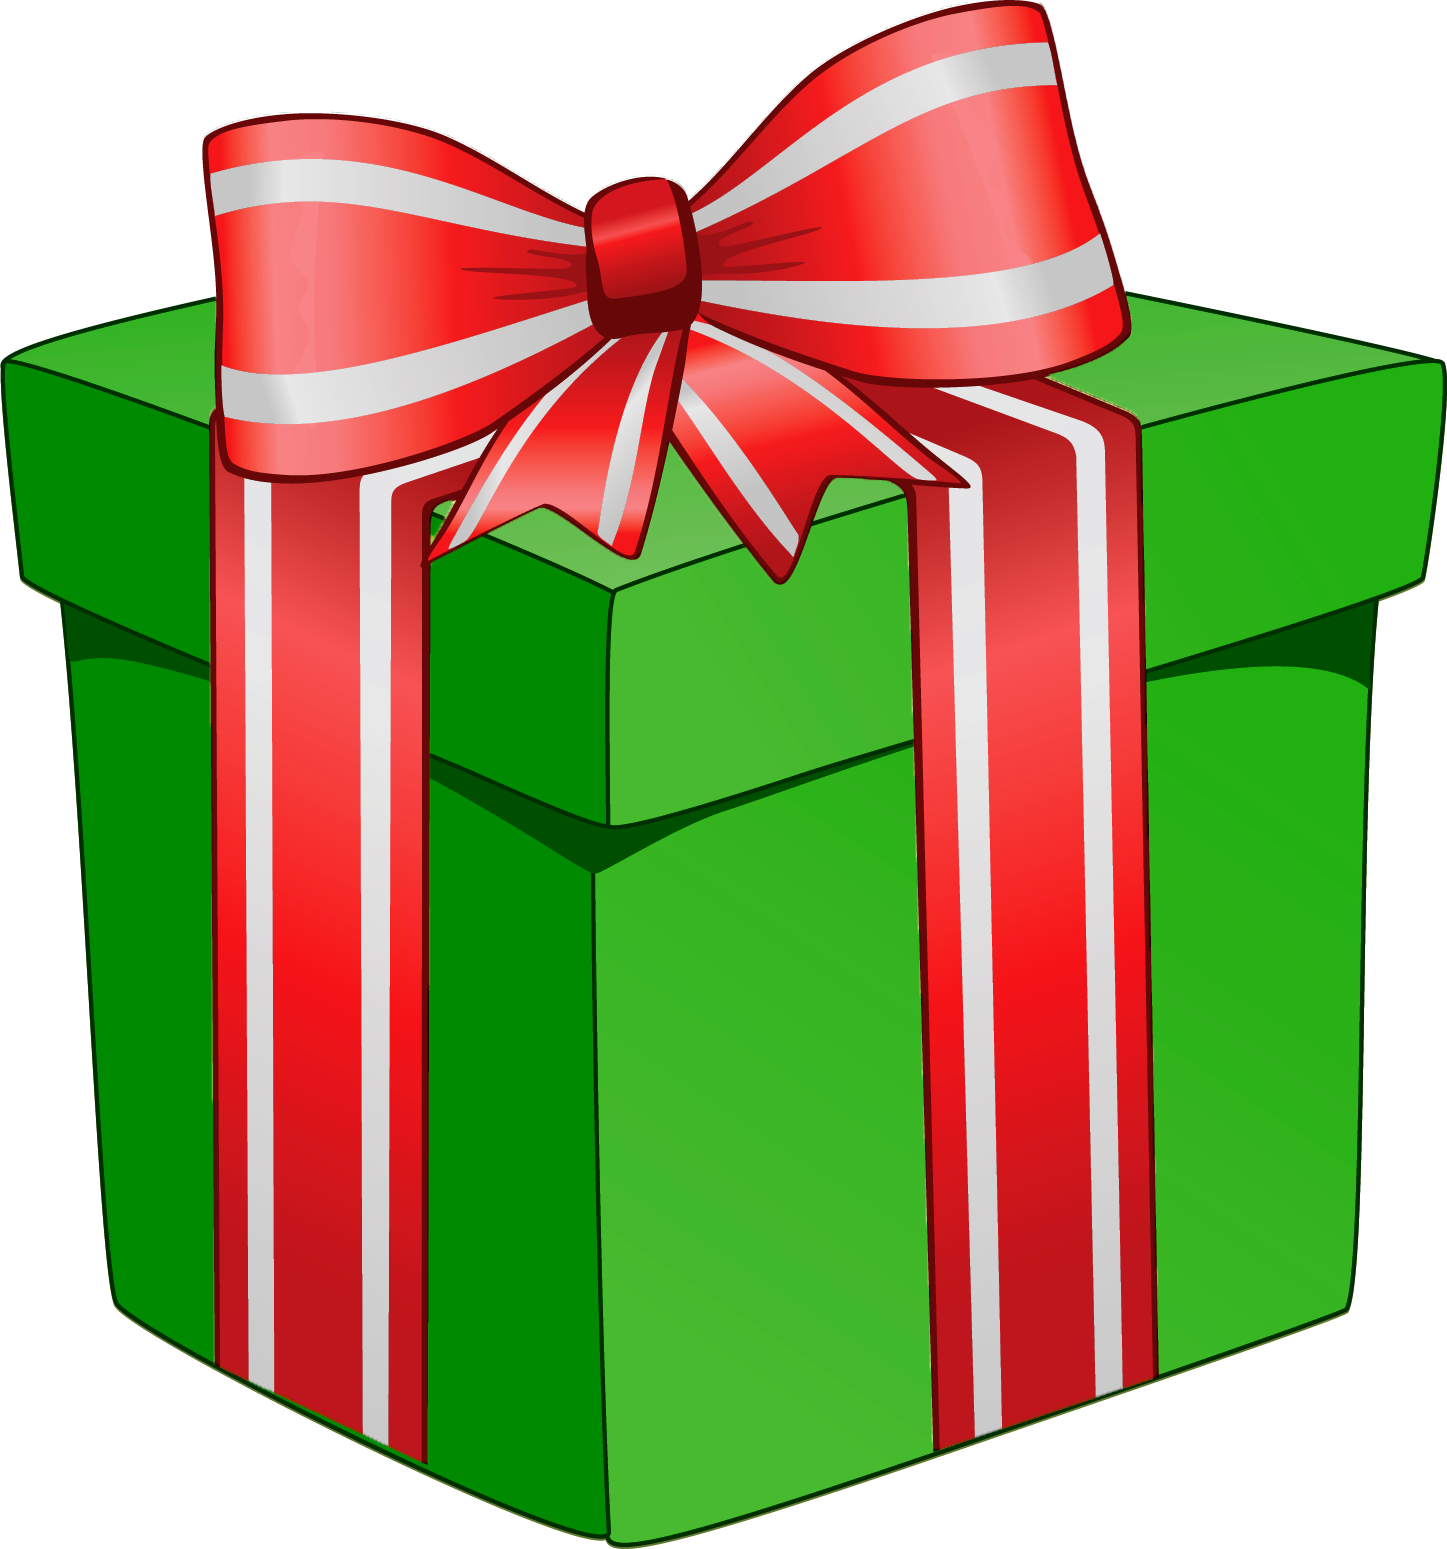 Cartoon present png. Green gift box with